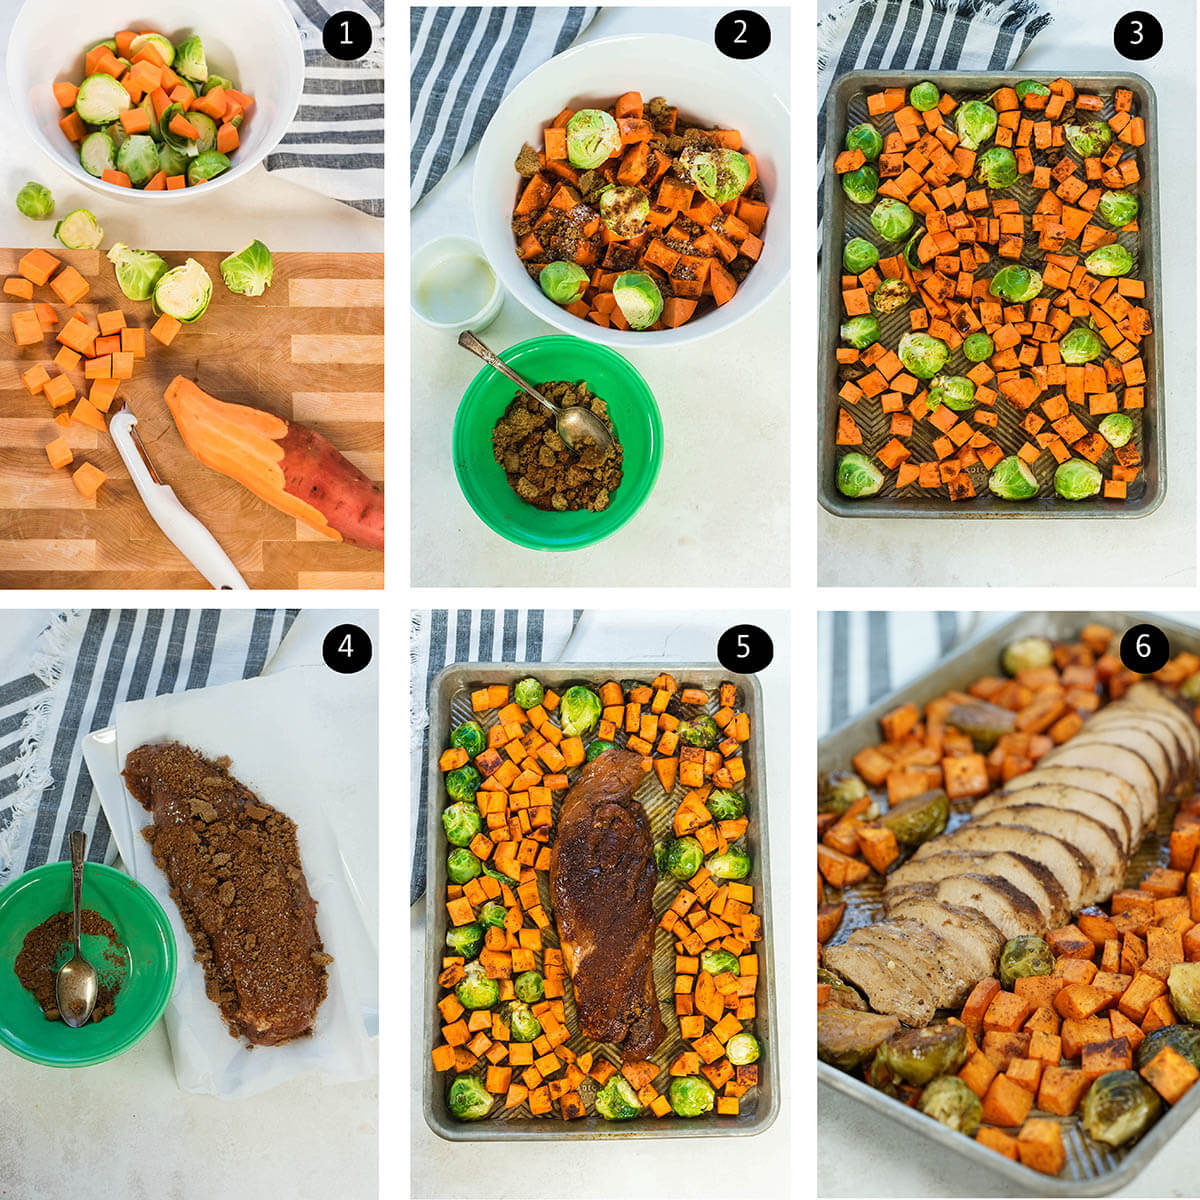 Step by step instructions to make sheet pan meal.